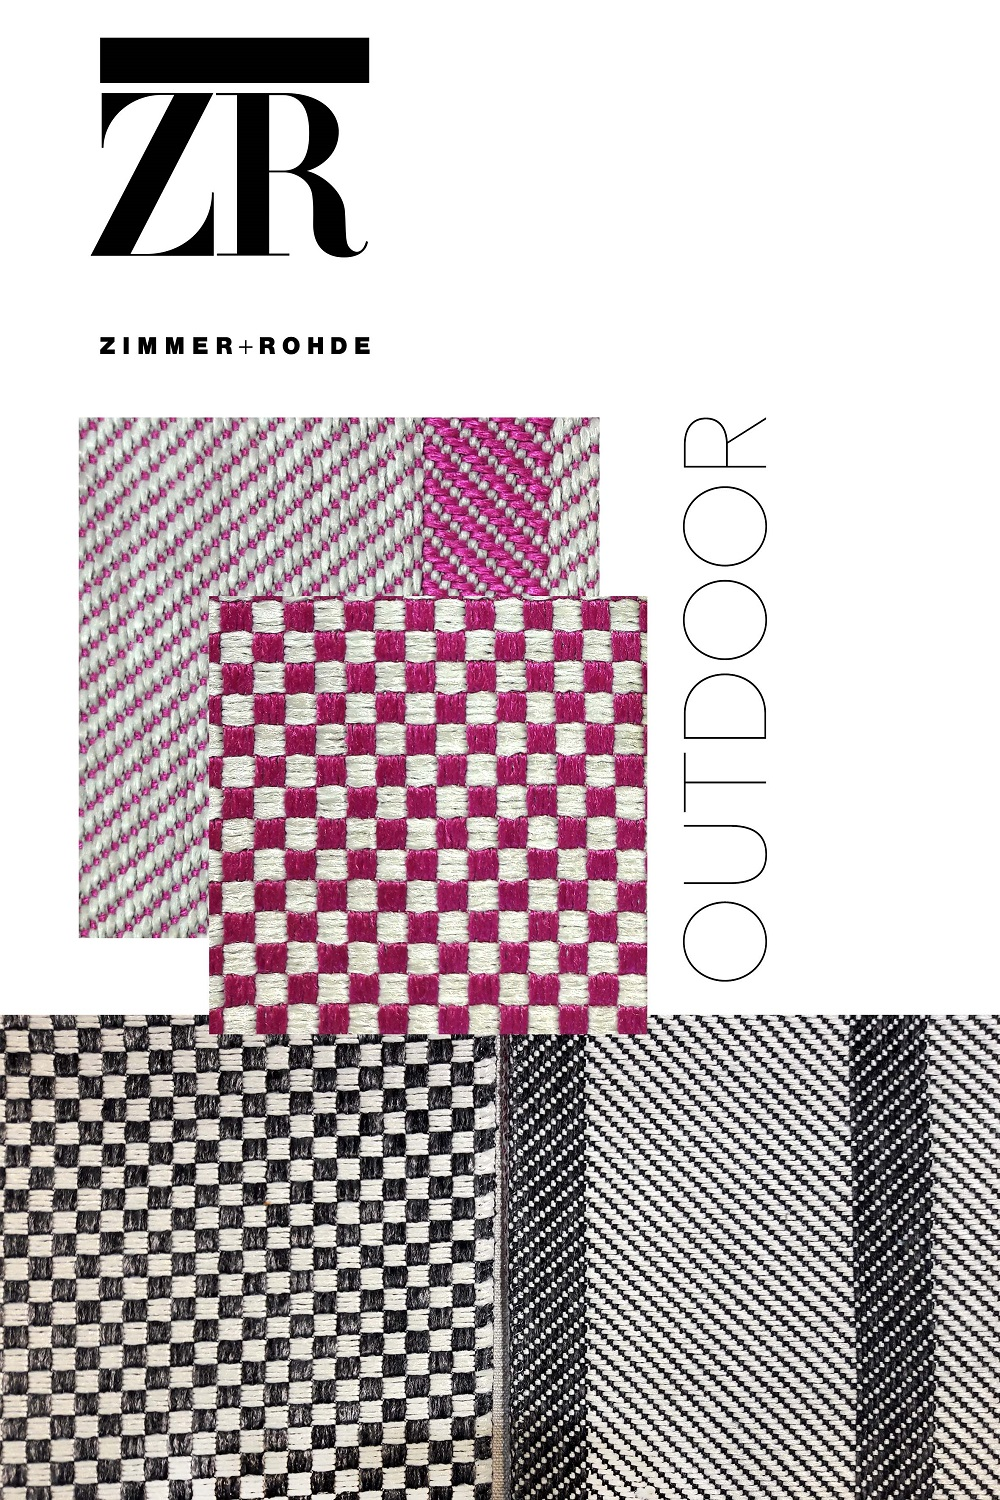 zimmer rohde outdoor fabrics outdoor textiles cripe s a. Black Bedroom Furniture Sets. Home Design Ideas